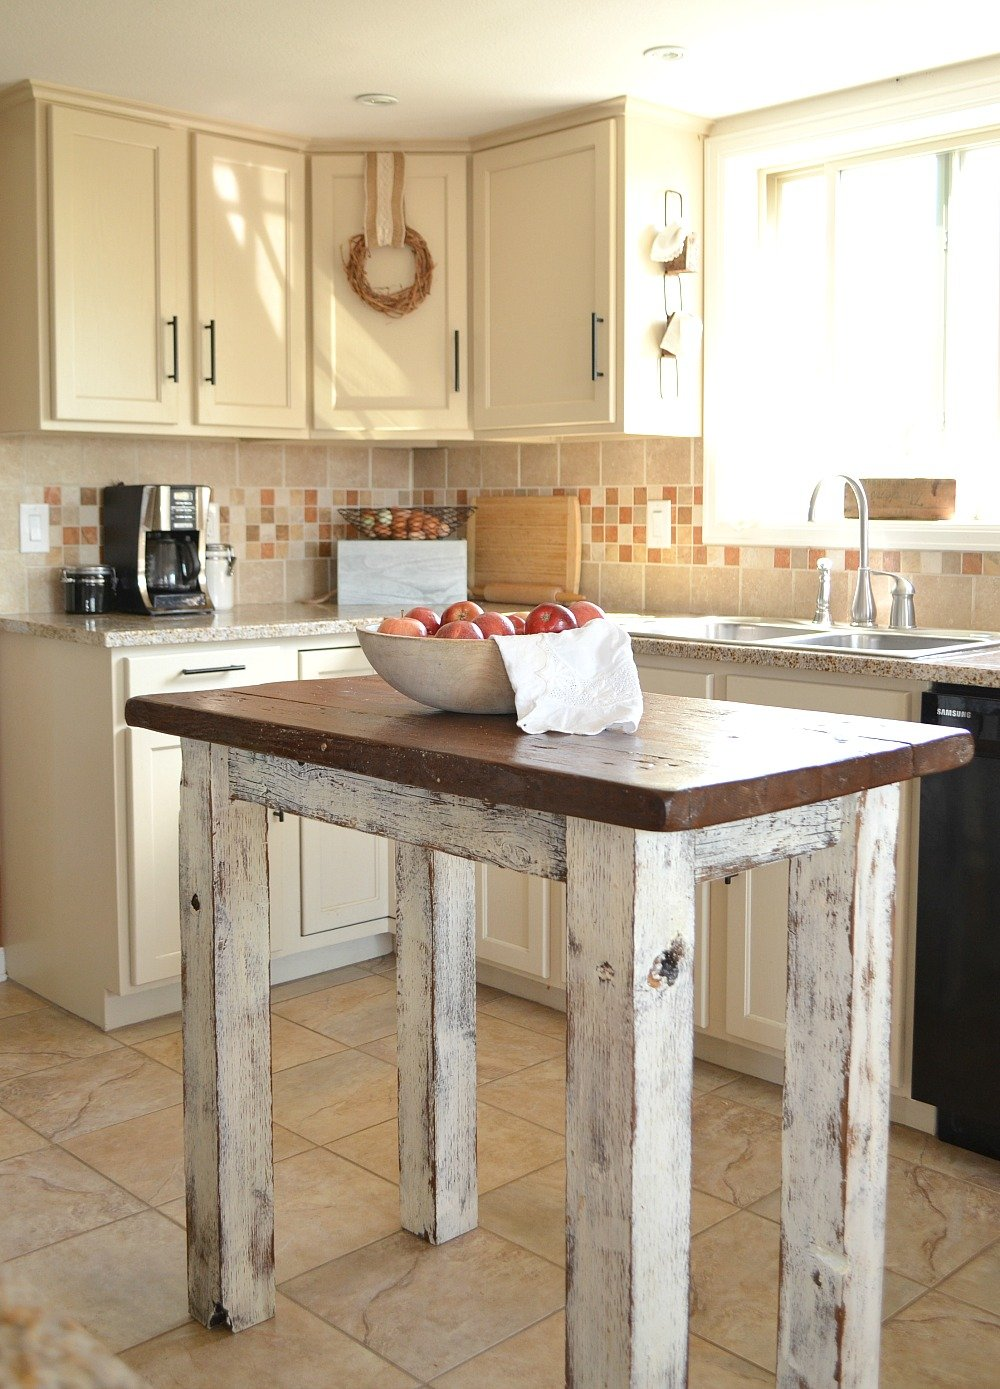 Farmhouse Kitchen and Rustic Island